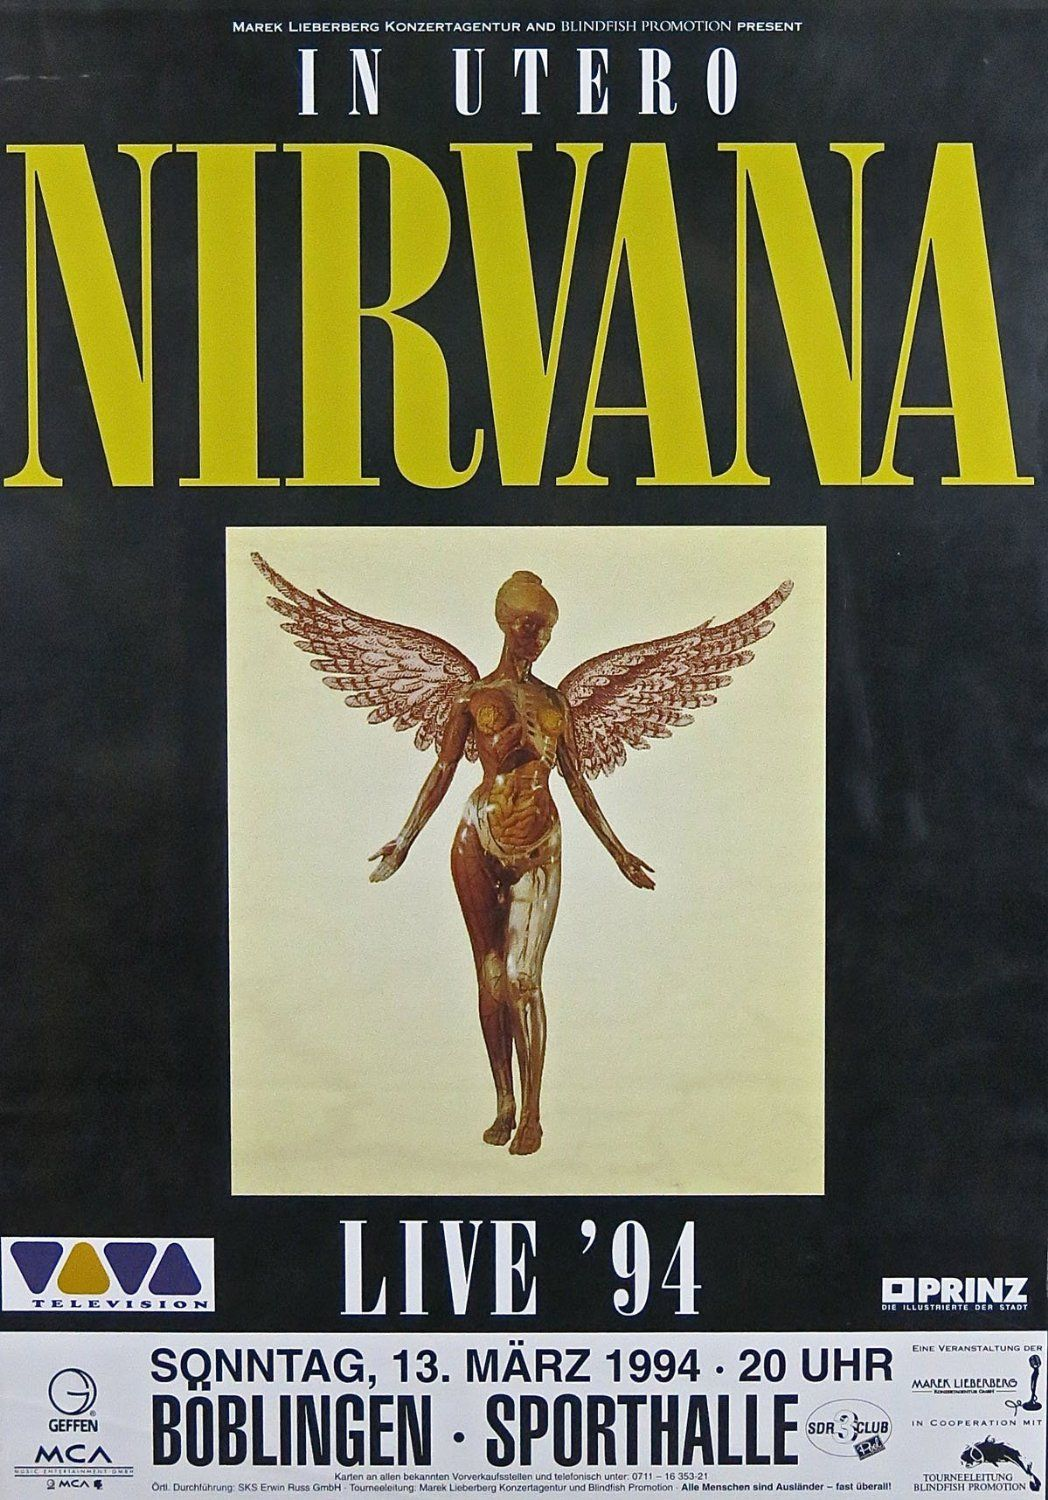 Nirvana reproduction Concert photo affiche 40x30cms: Amazon fr